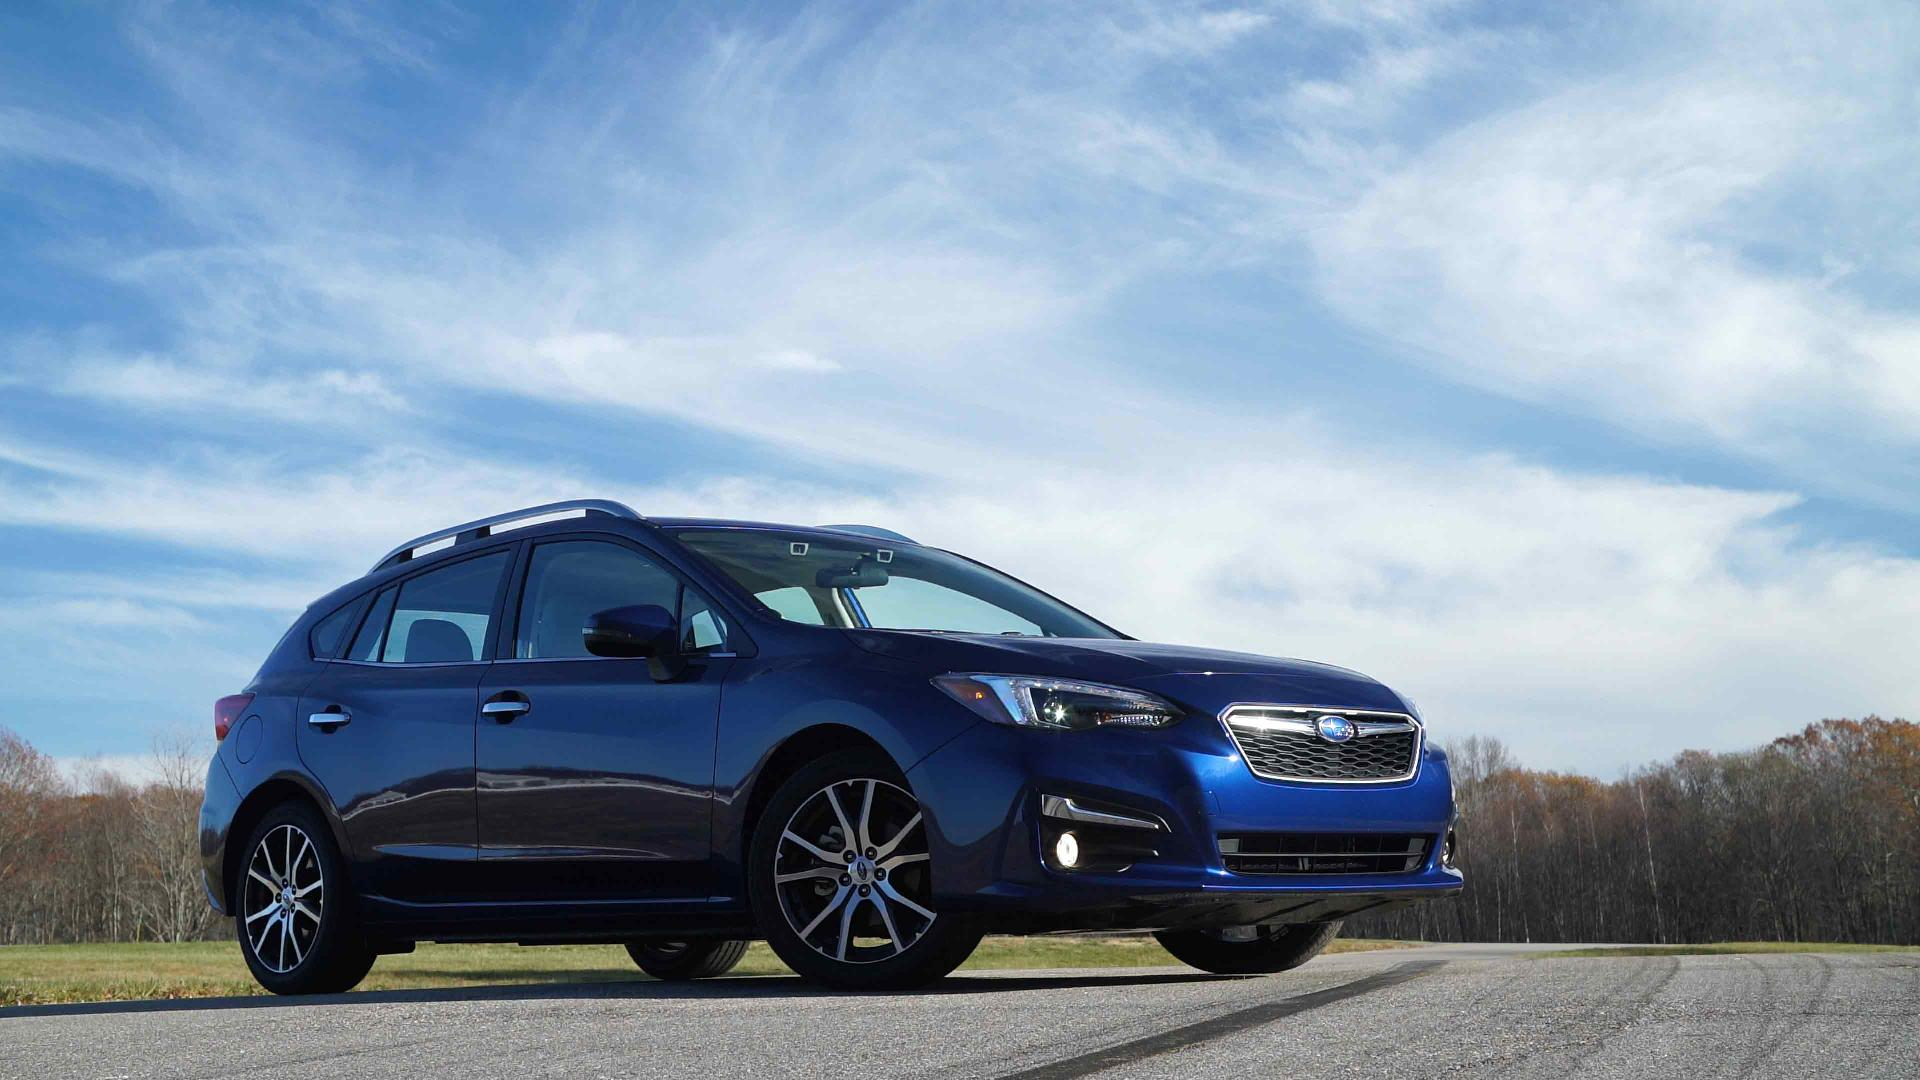 2018 Subaru Impreza Reviews Ratings Prices Consumer Reports 2000 Legacy Thermostat